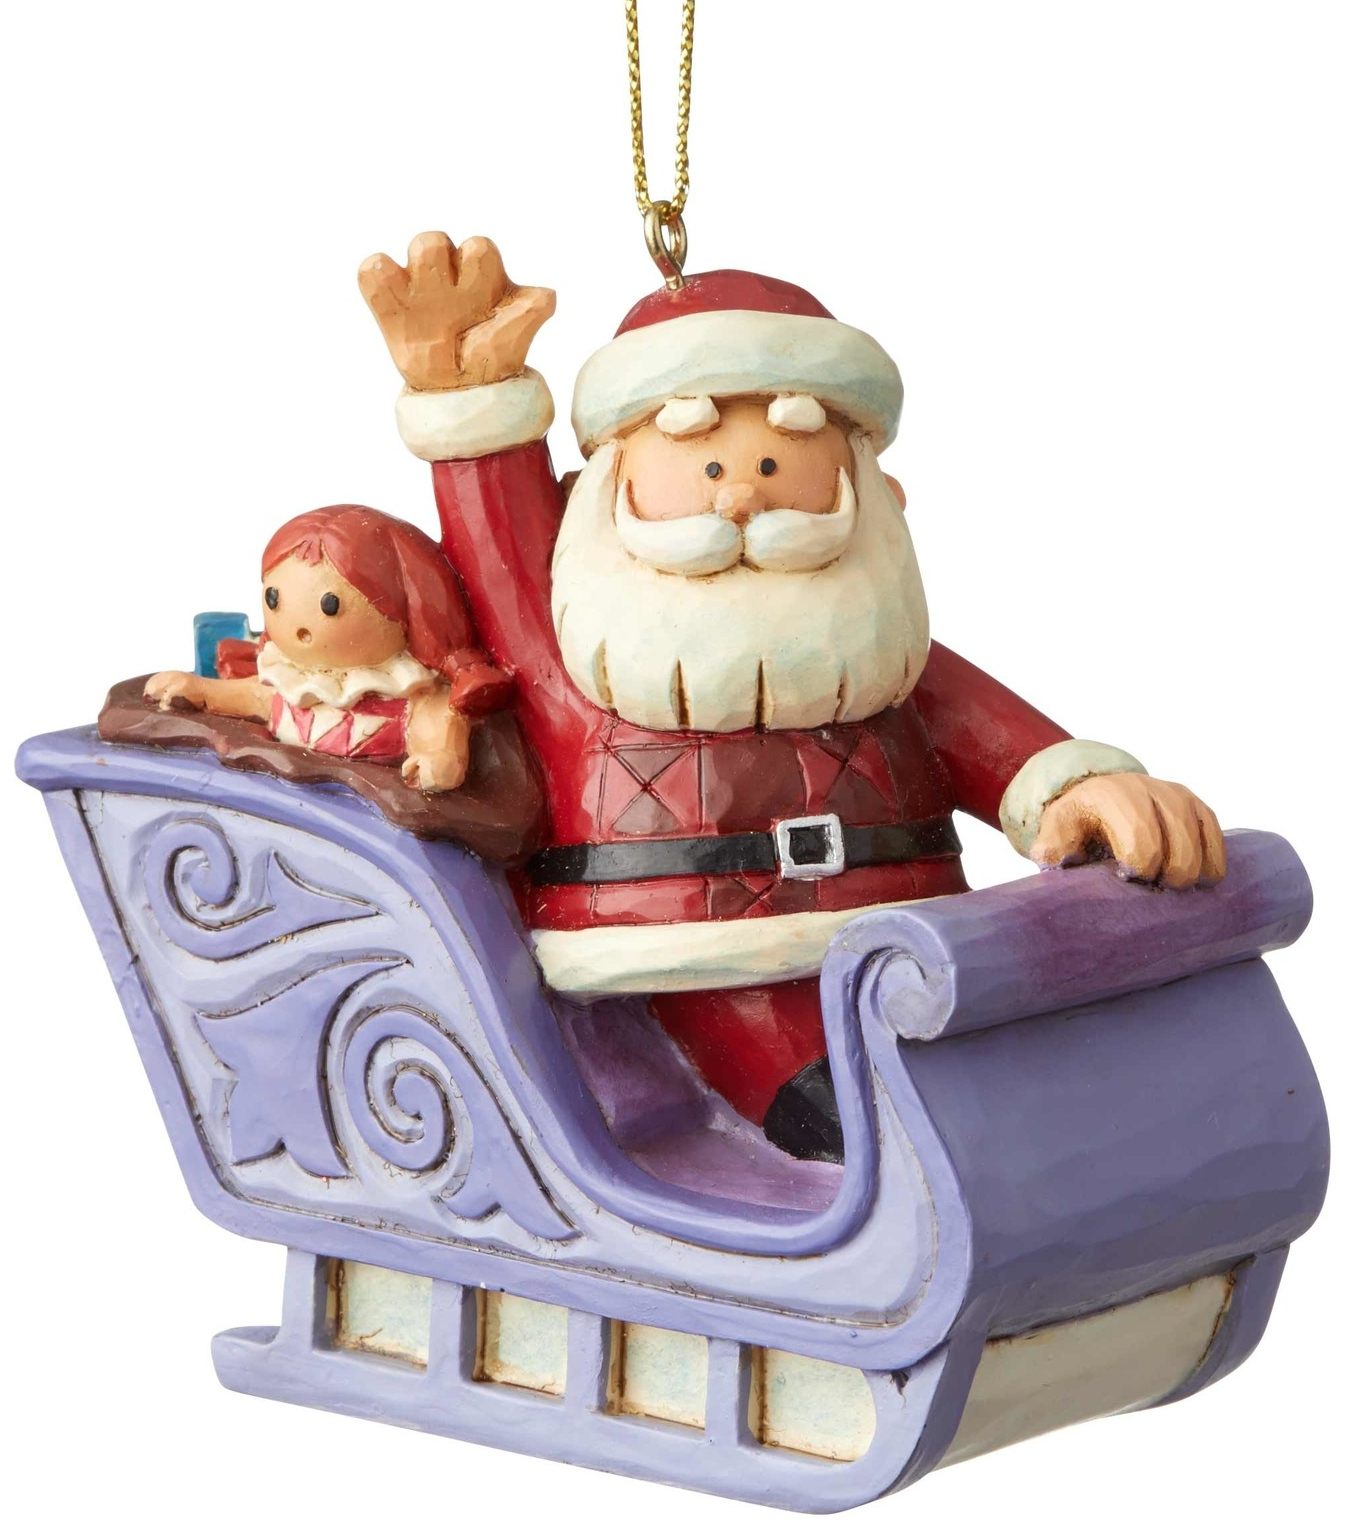 Rudolph Traditions by Jim Shore 6004149 Santa In Sleigh